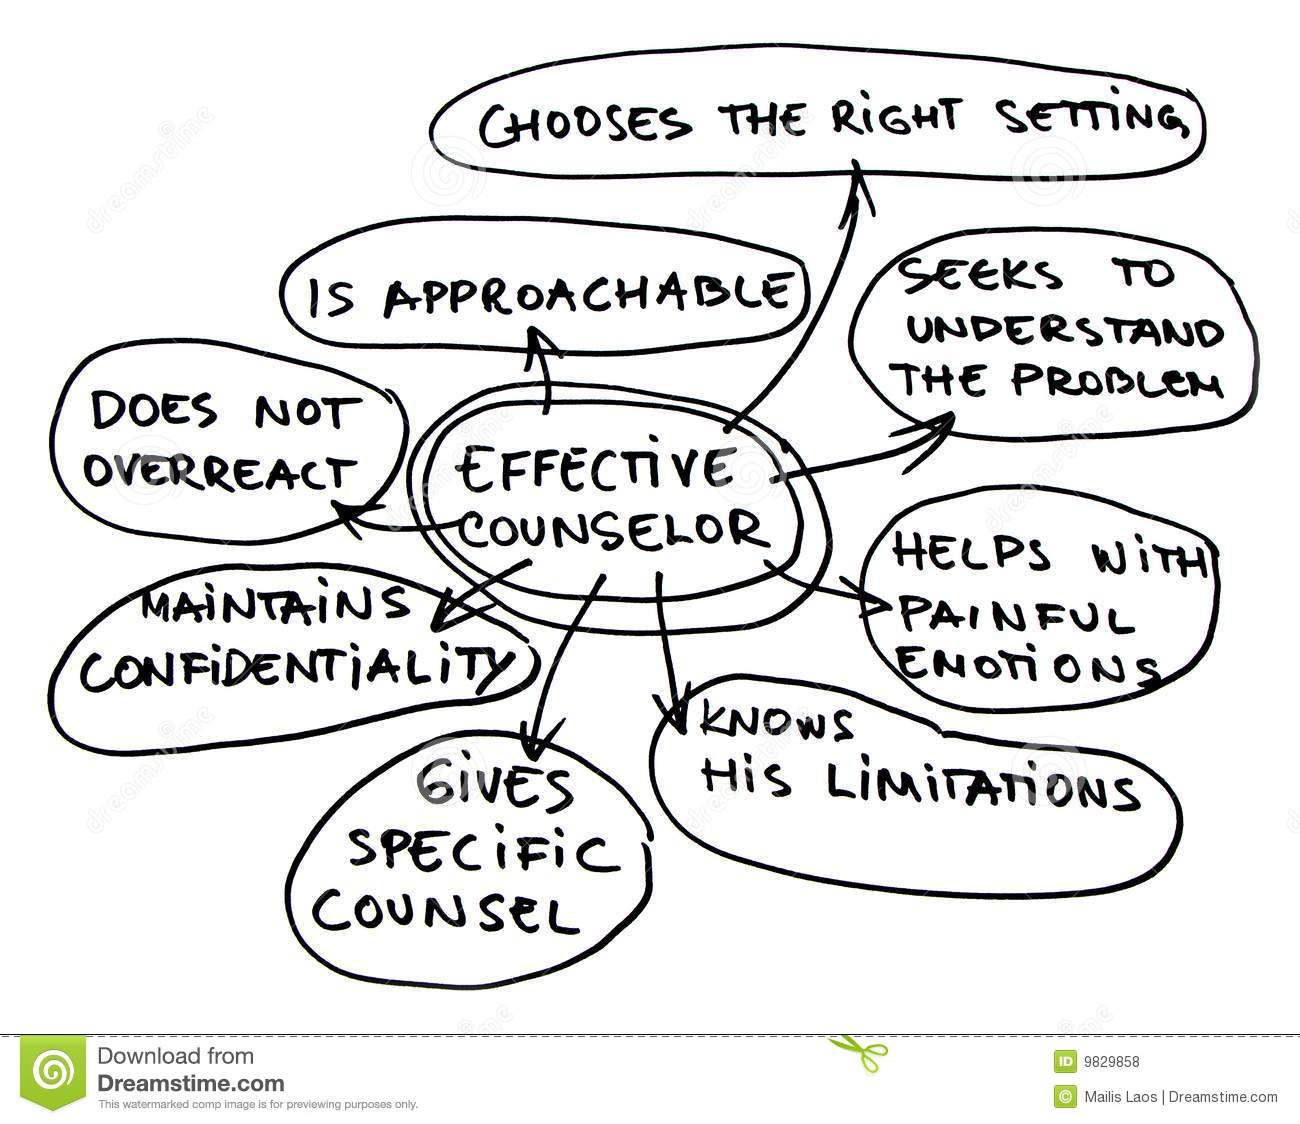 Effective counselor map stock photo. Image of idea, paper